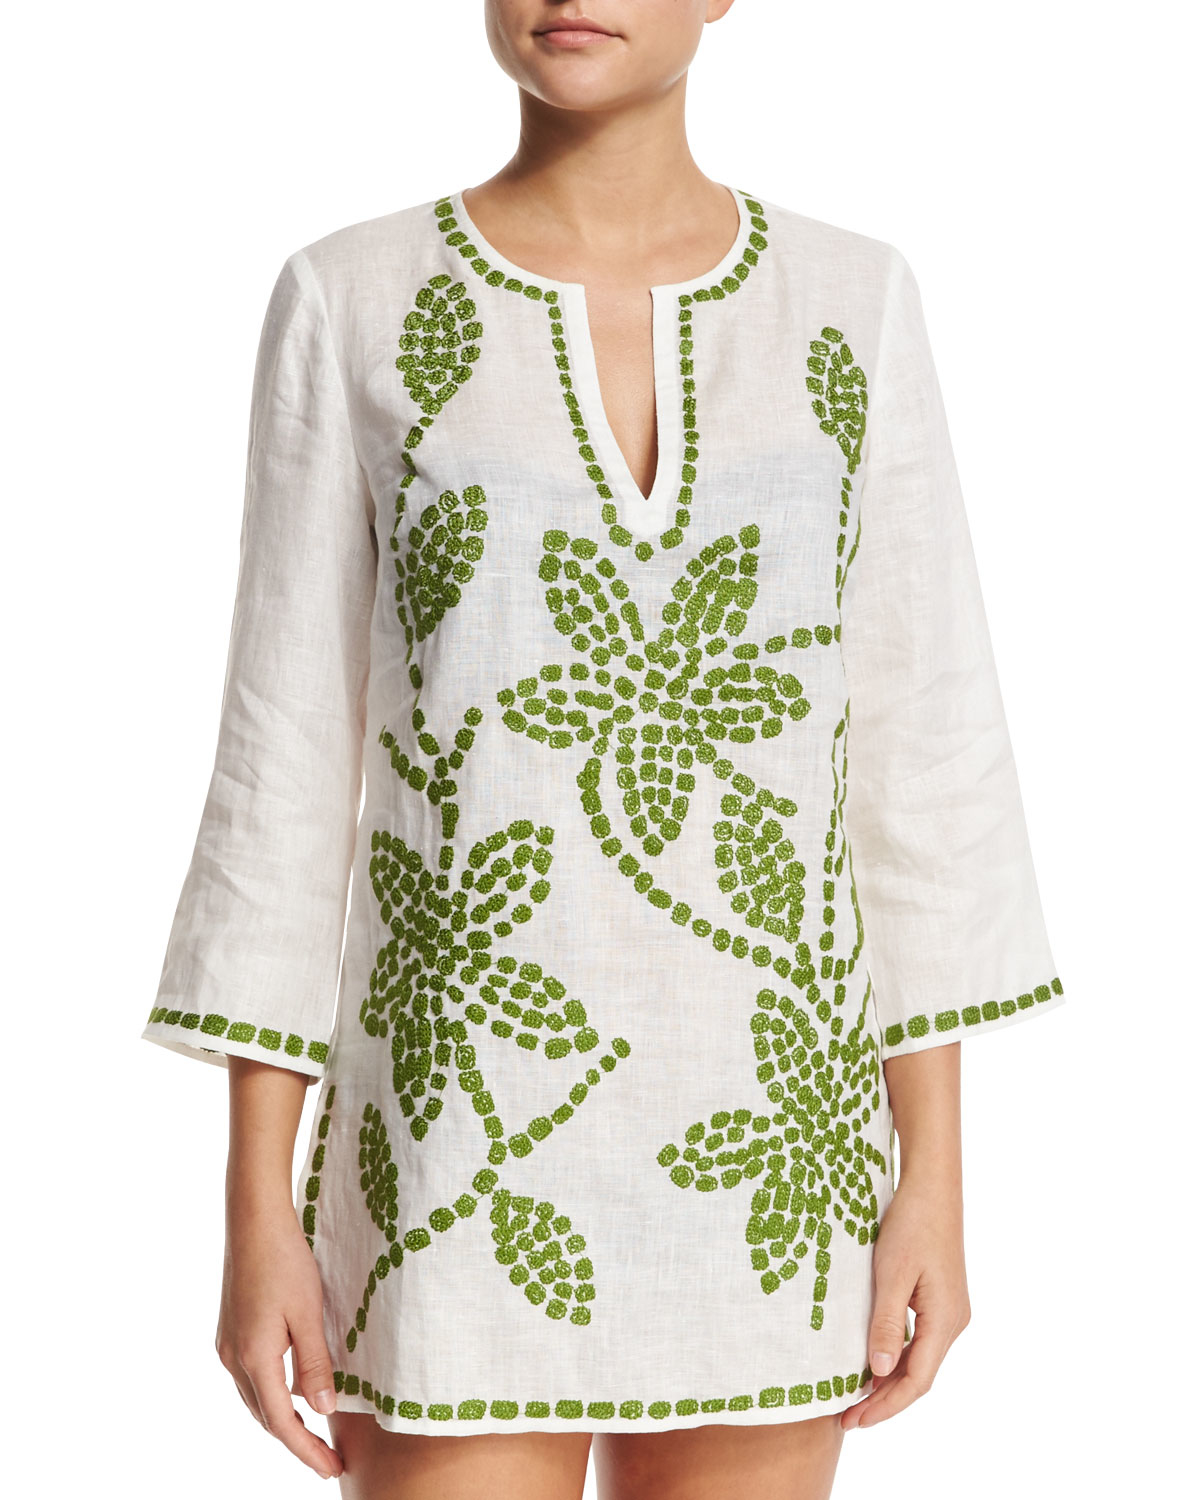 b24f1c83b52 Lyst - Tory Burch Embroidered-floral Tunic Coverup in White